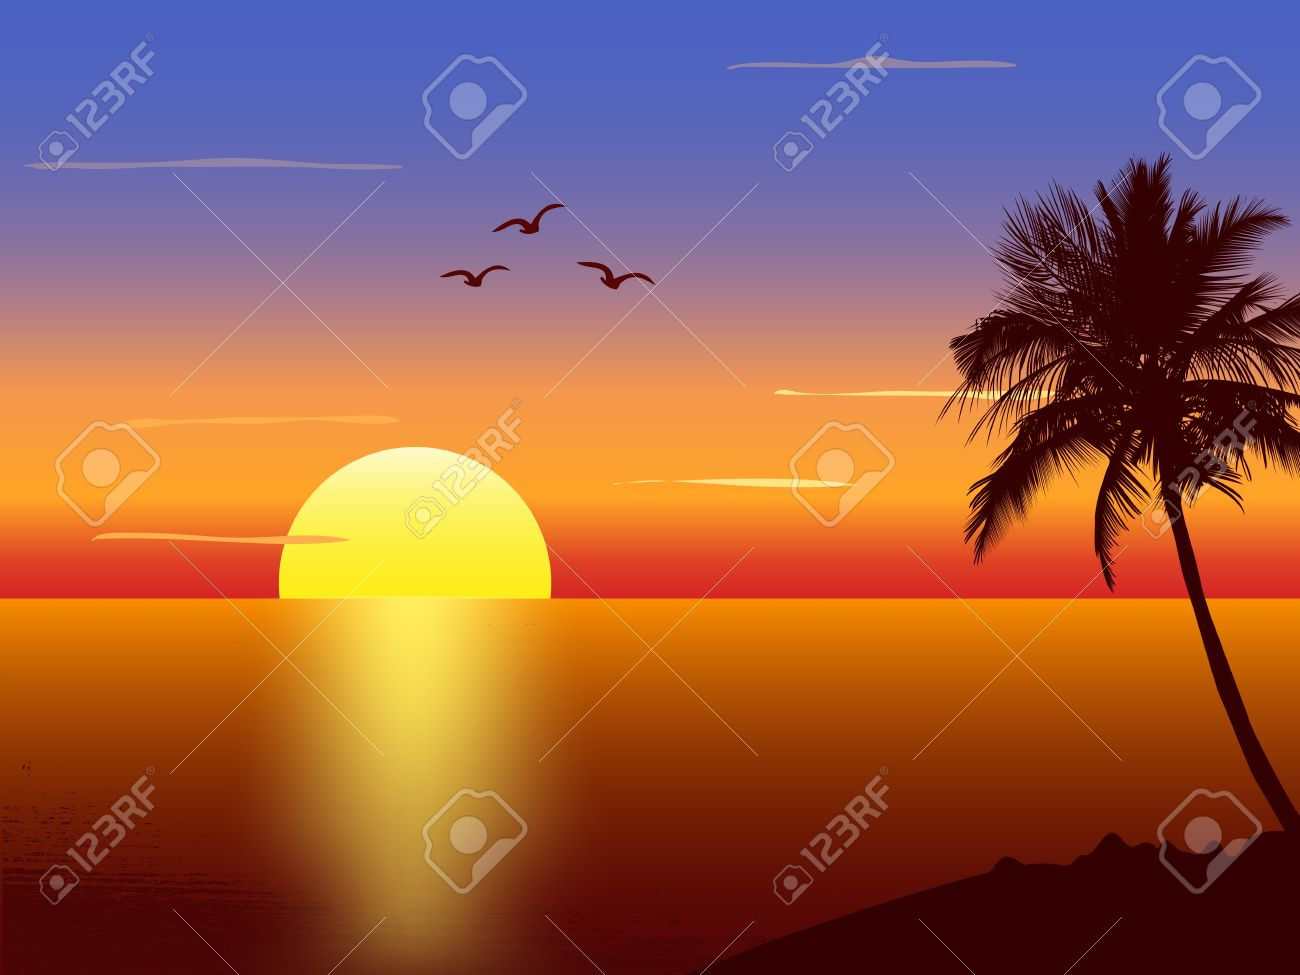 Sunset with palmtree silhouette Stock Vector - 12897697